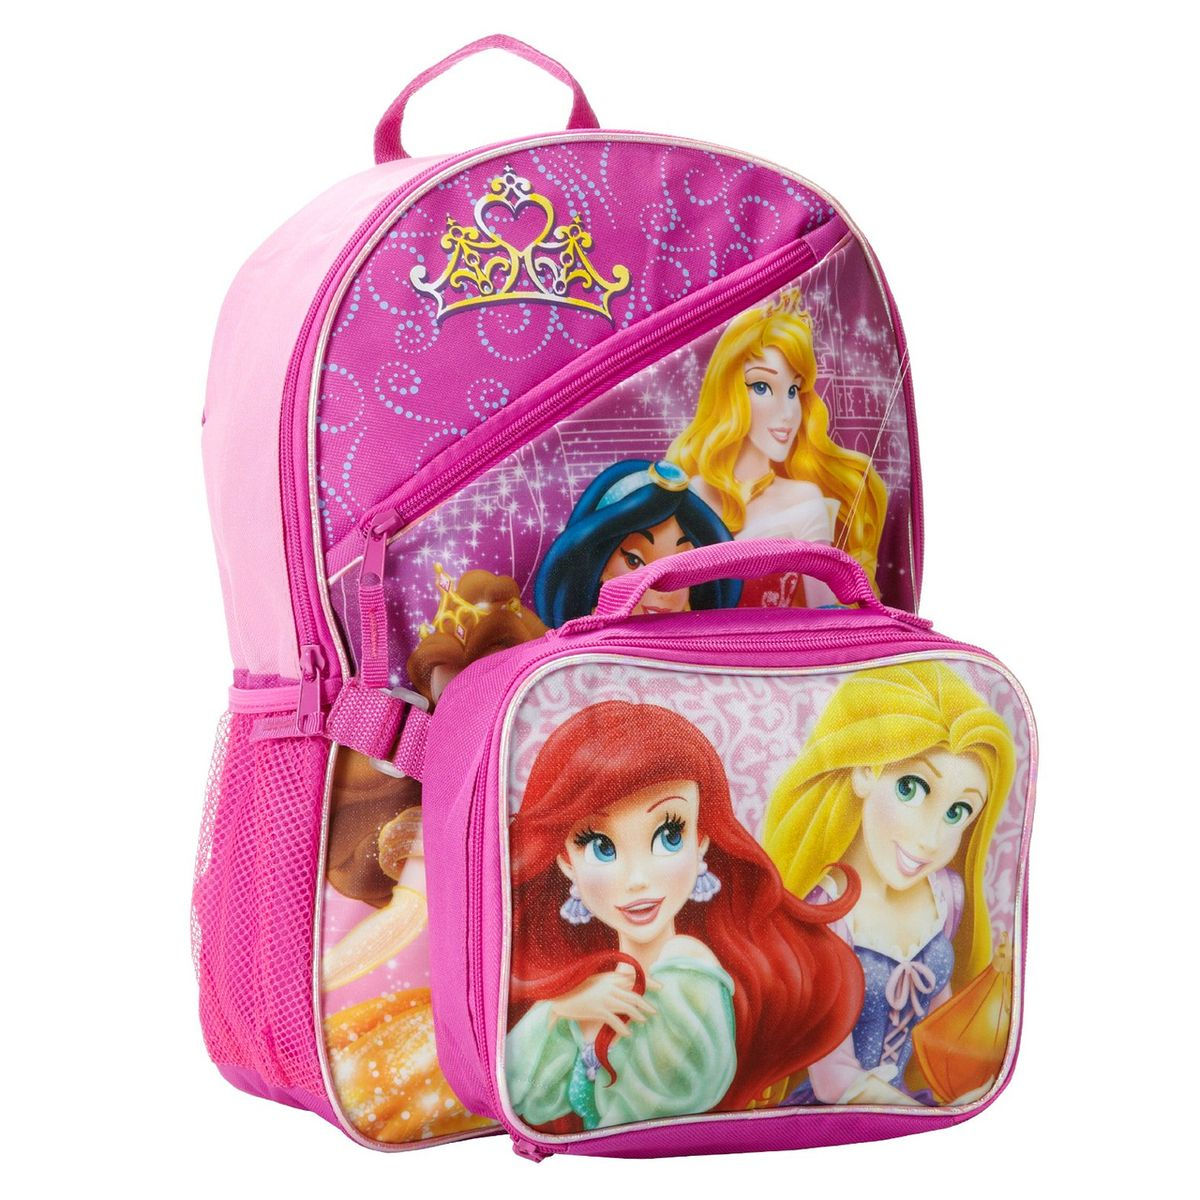 Princess 16 Quot Large Backpack W Lunch Bag Disney Princess